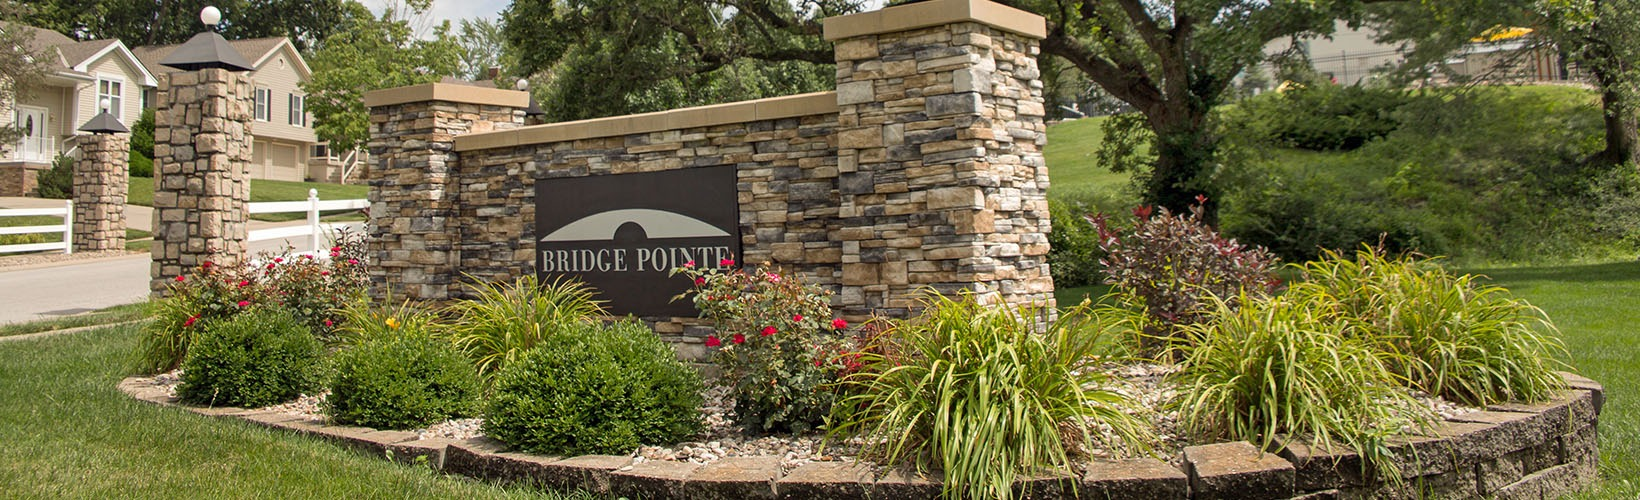 Bridge Pointe Homes